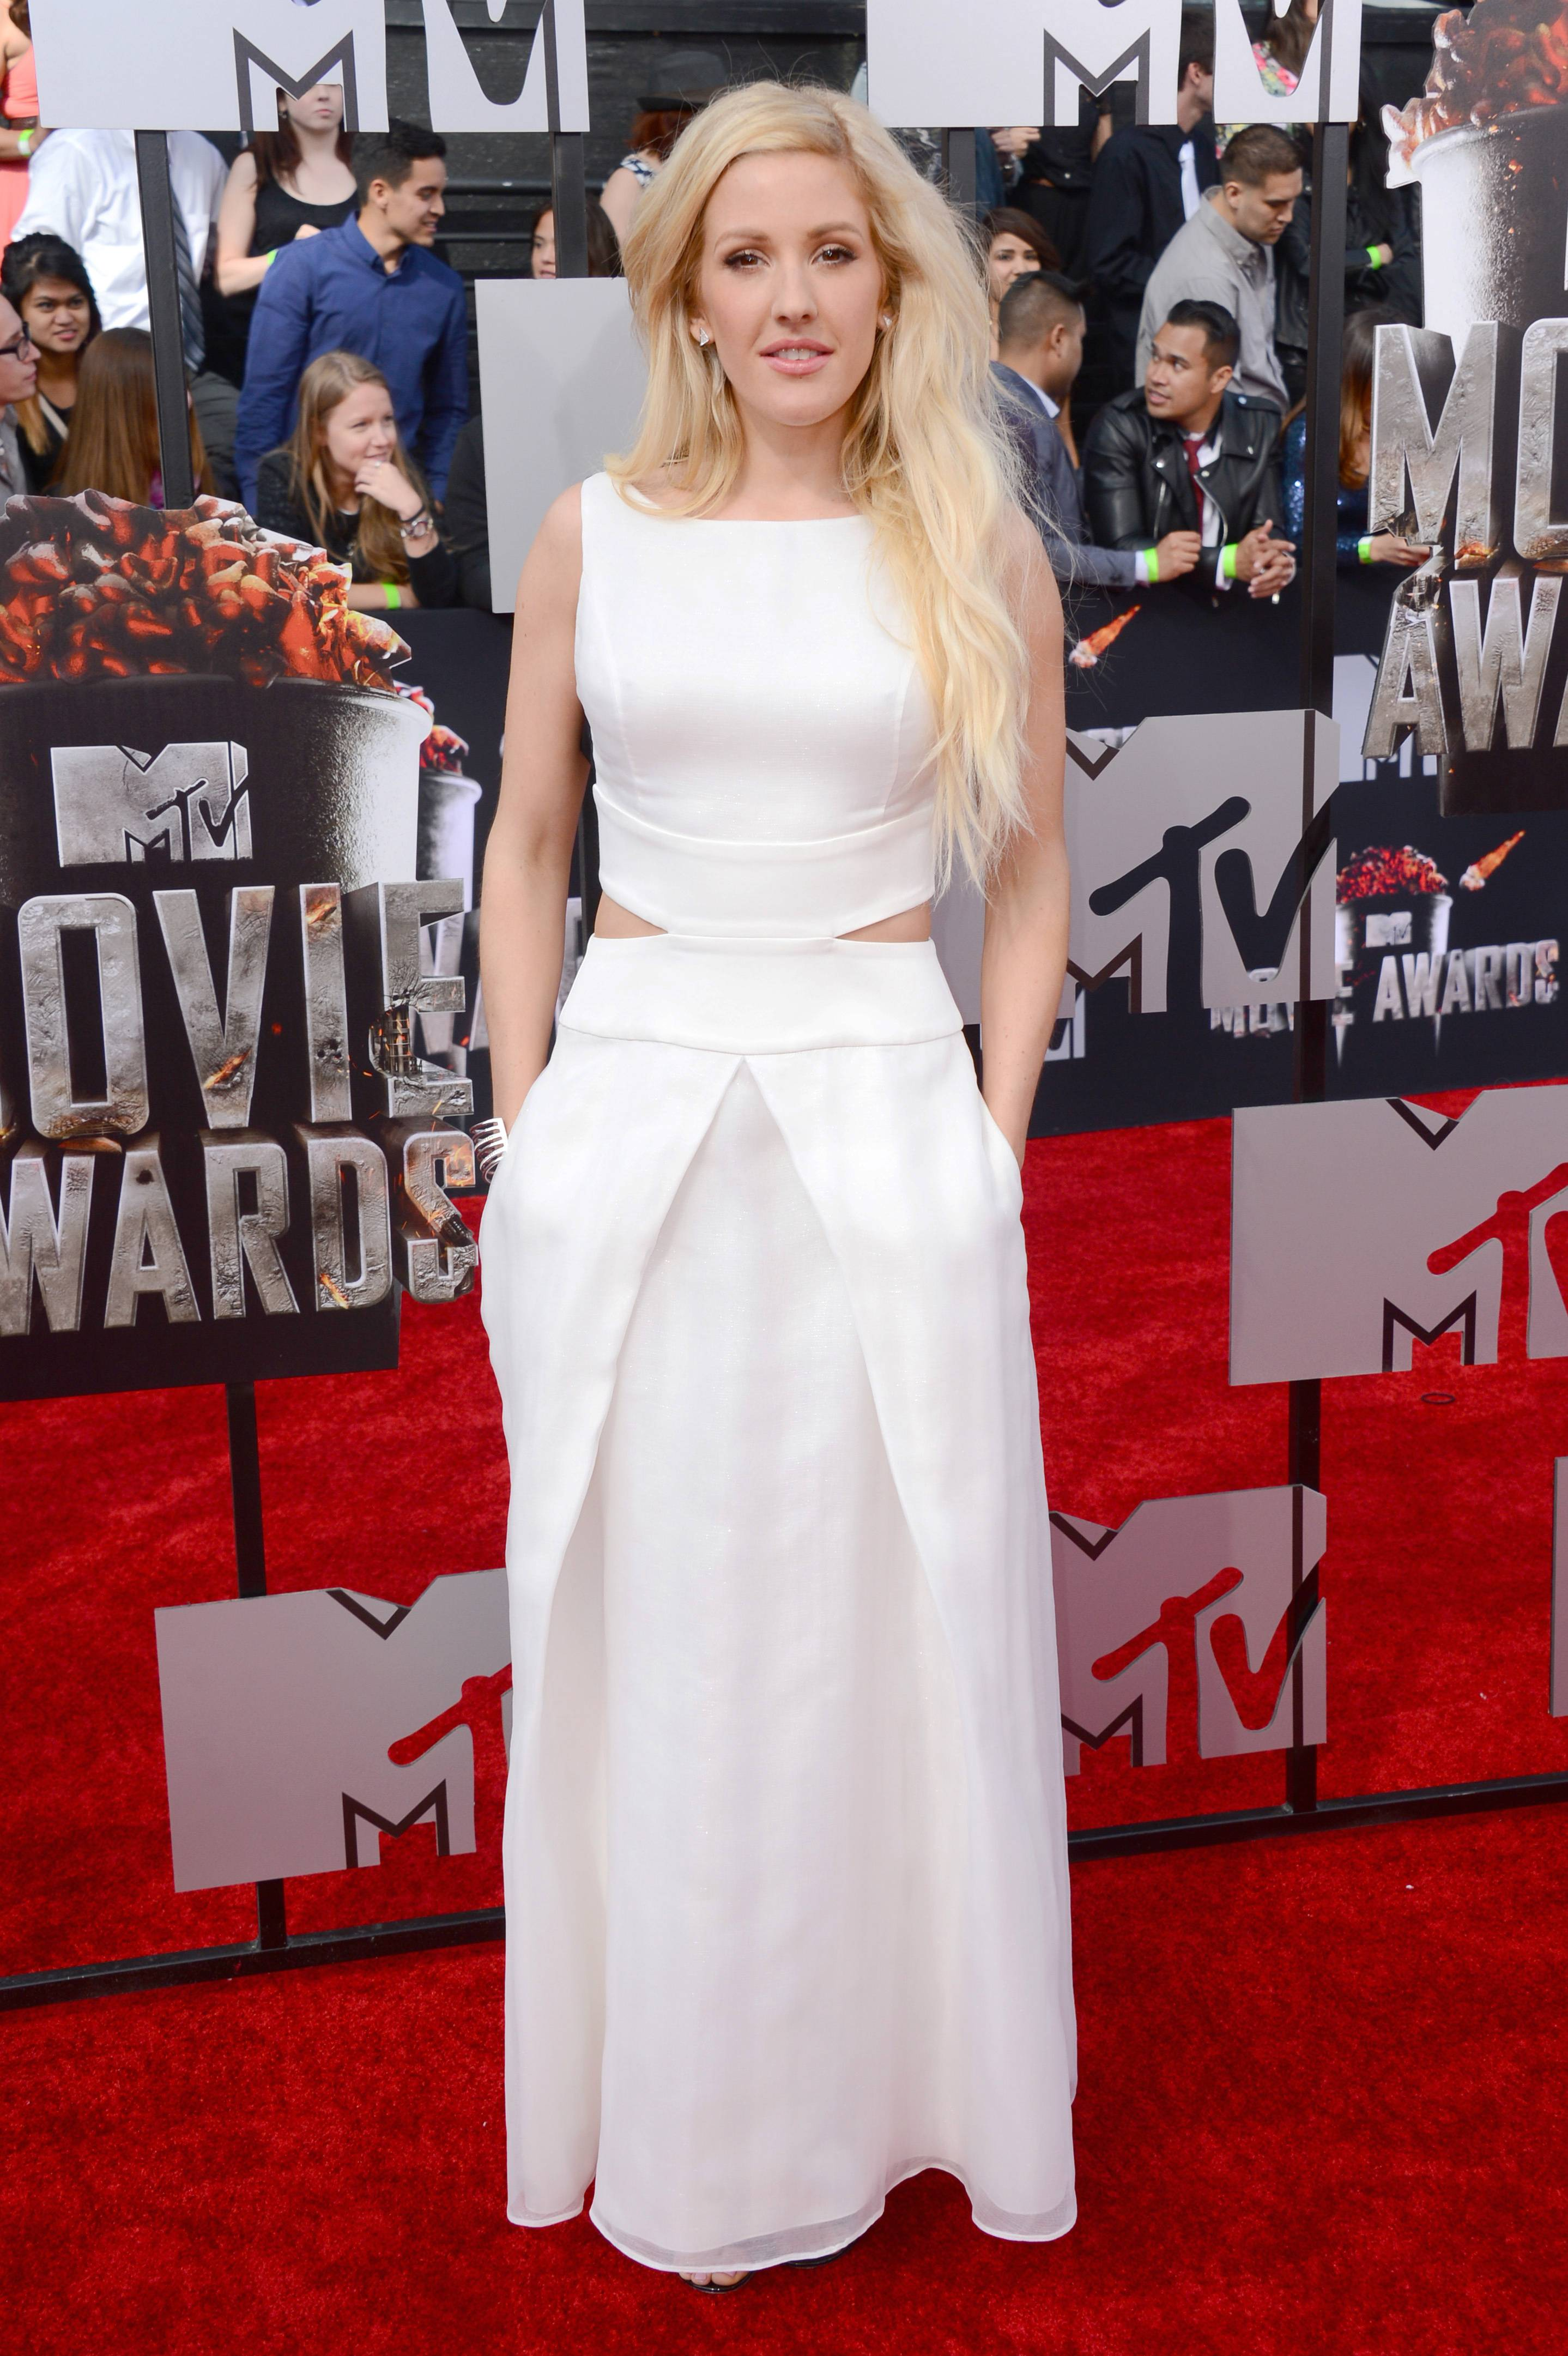 Ellie Goulding arrives at the MTV Movie Awards on Sunday.